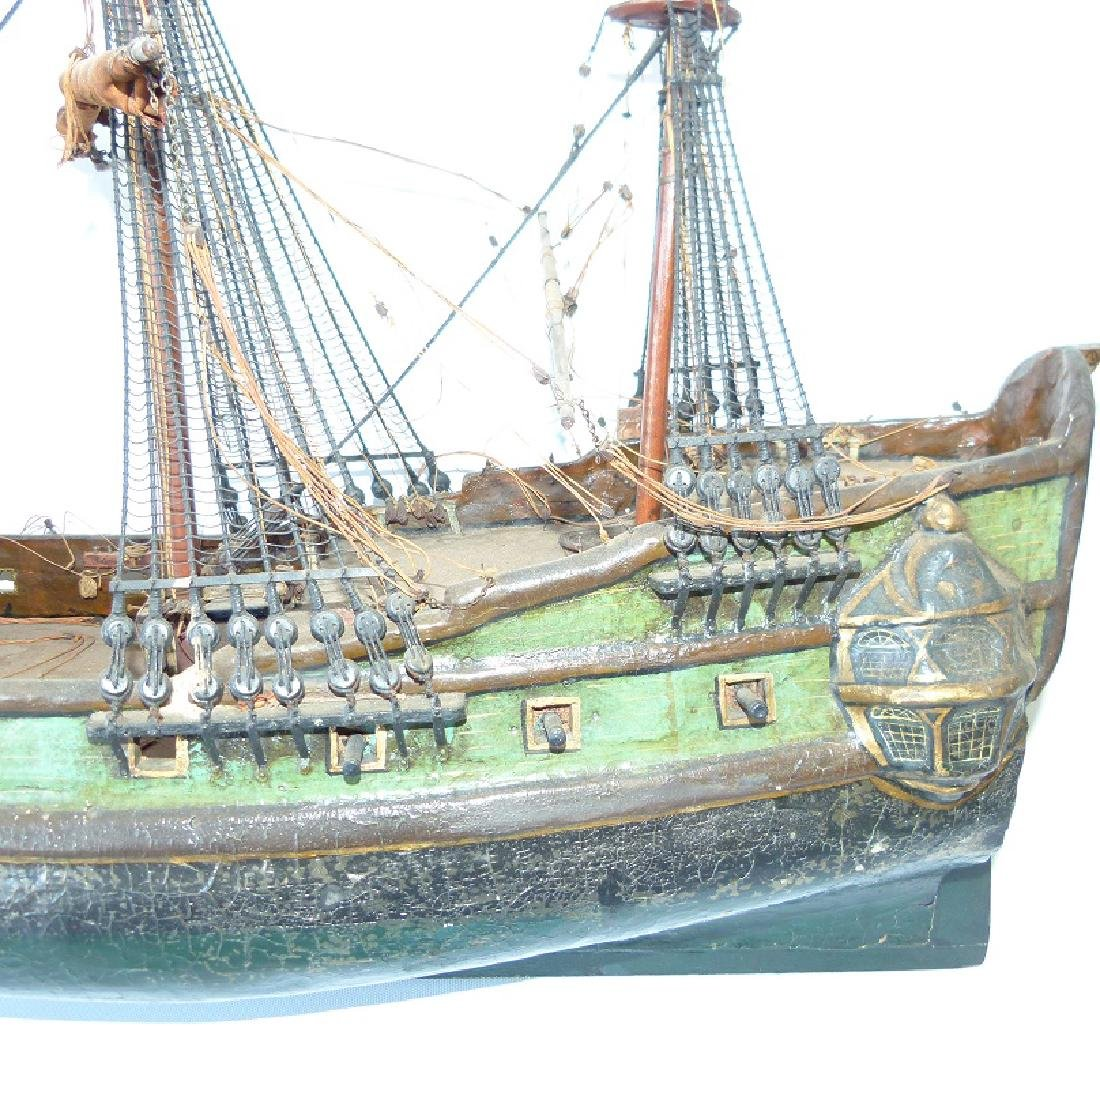 FOLK ART MILITARY SHIPS MODEL, 20TH C. - 3